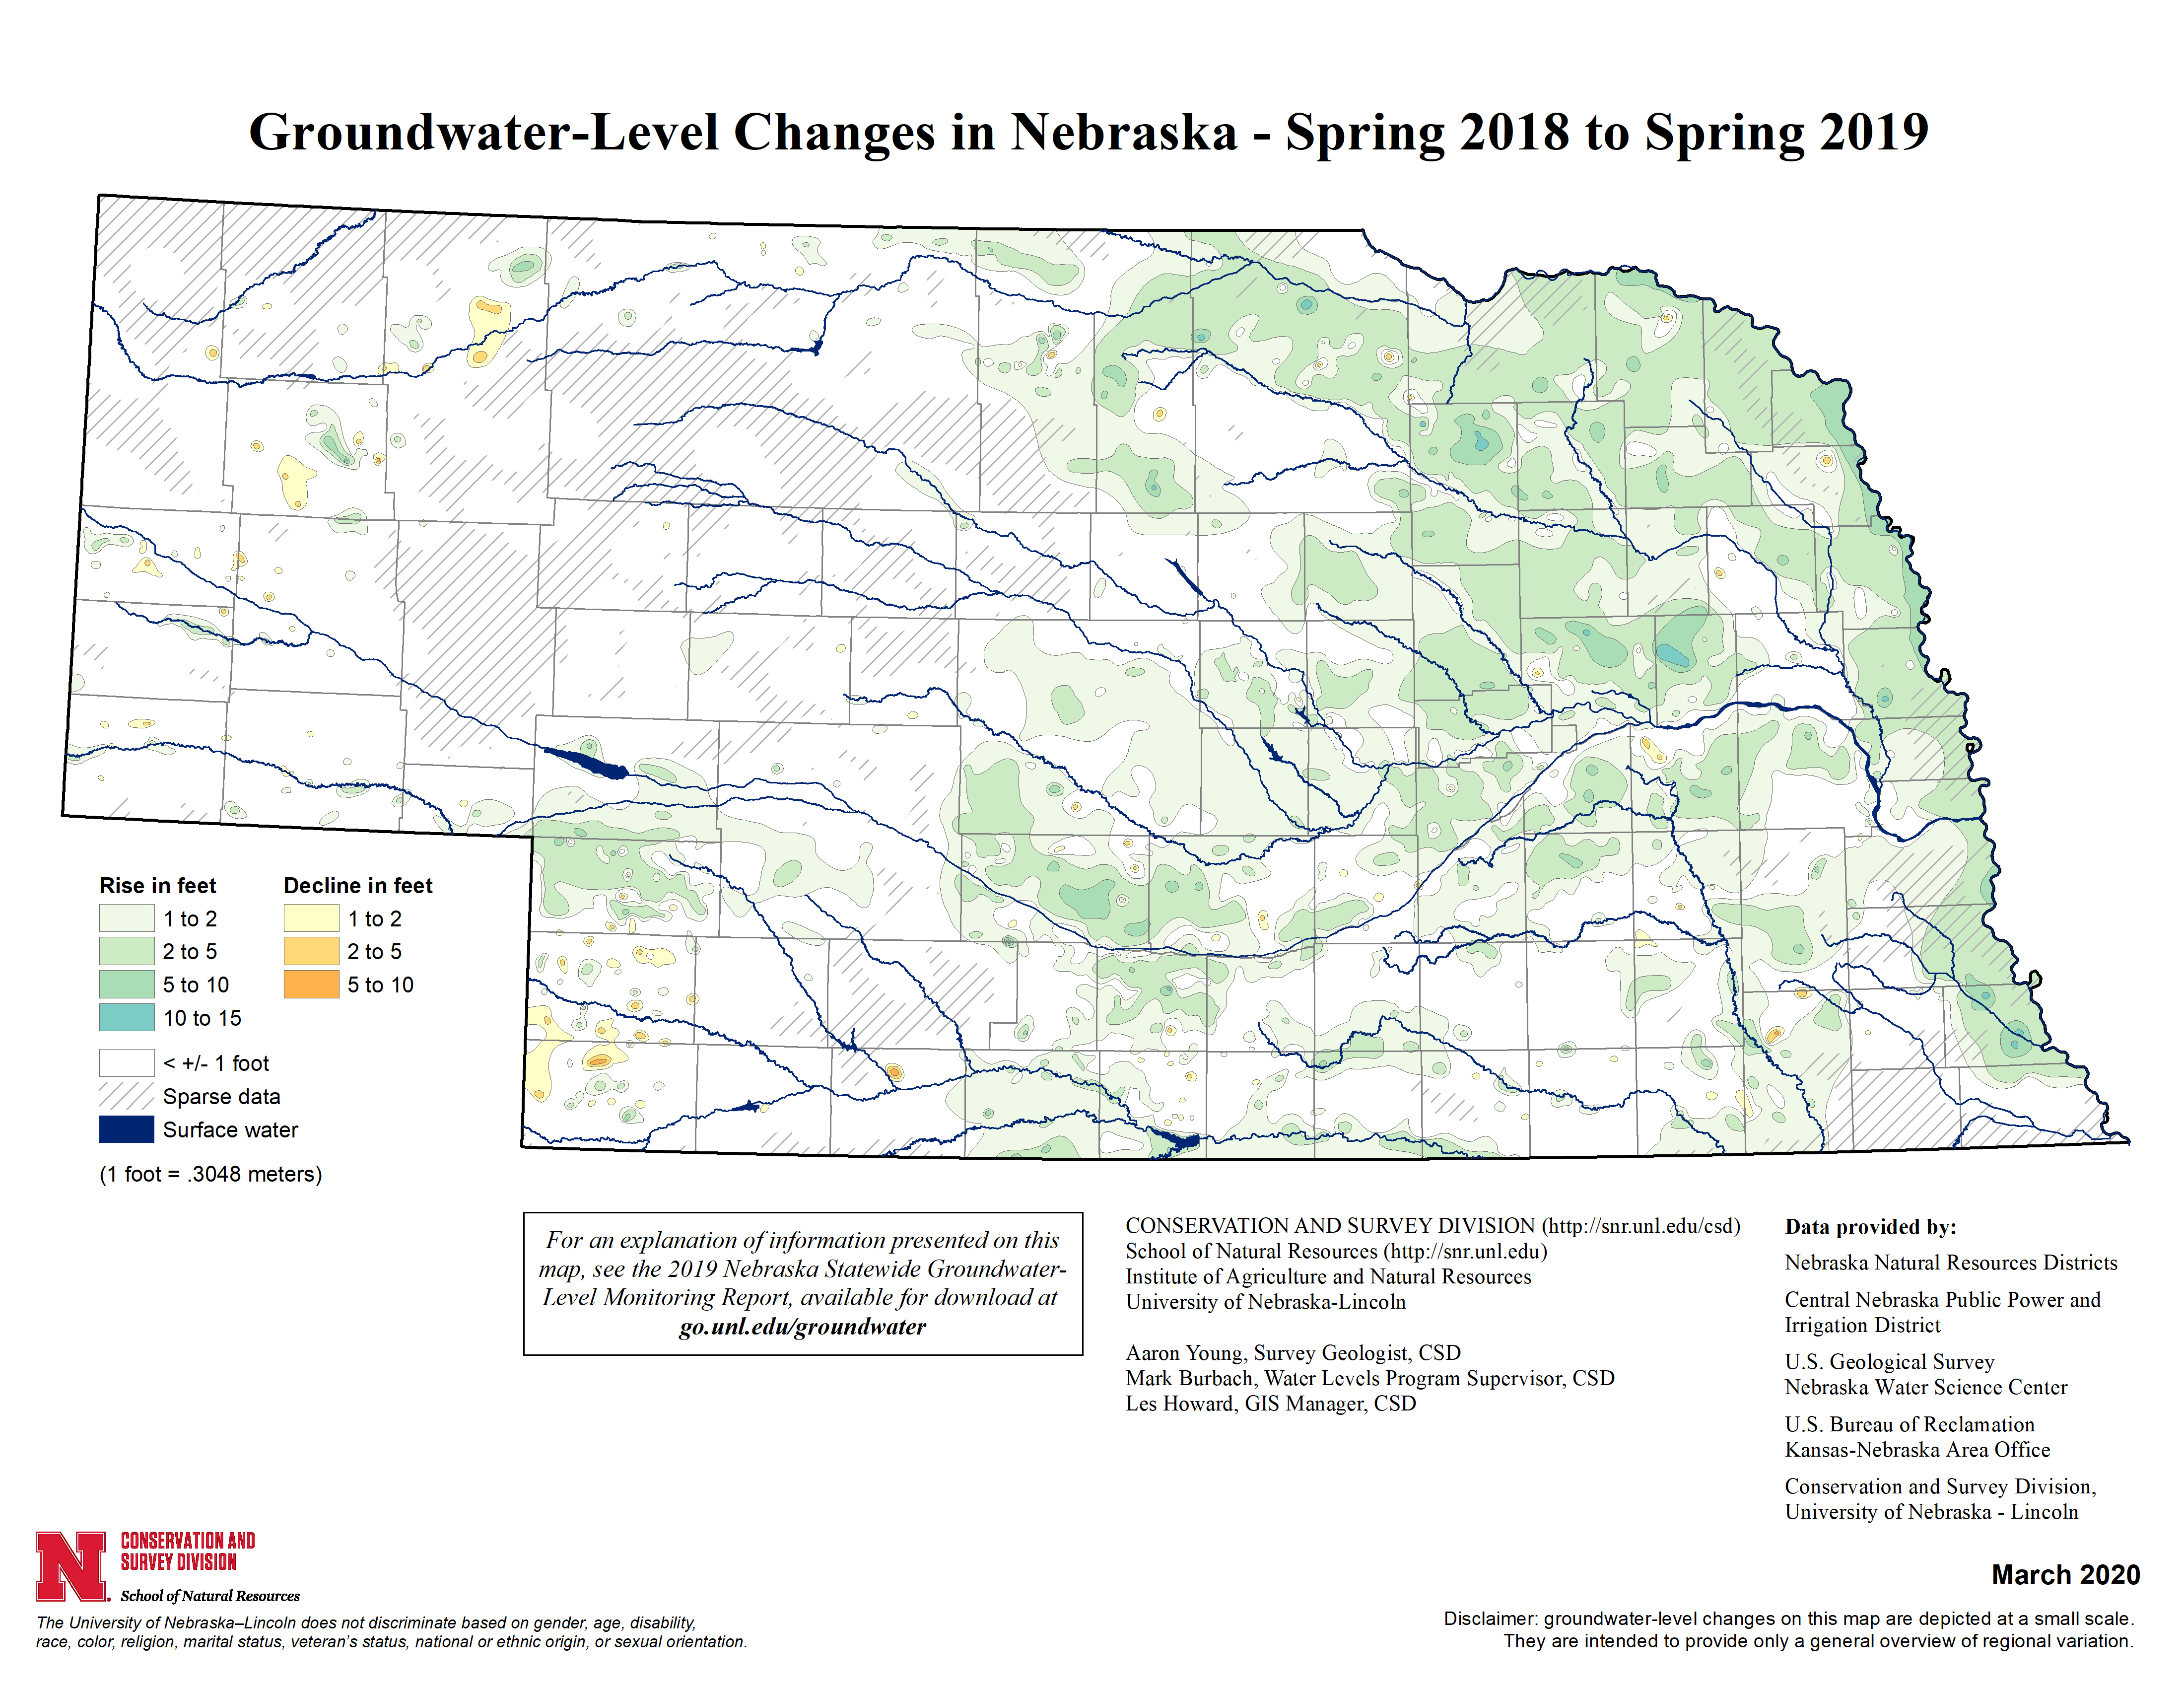 Pockets of southwestern Nebraska and the panhandle saw minor groundwater level declines, but the latest Groundwater-Level Monitoring Report shows the changes from spring 2018 to spring 2019 shows a wealth of increases in groundwater supply across the rest